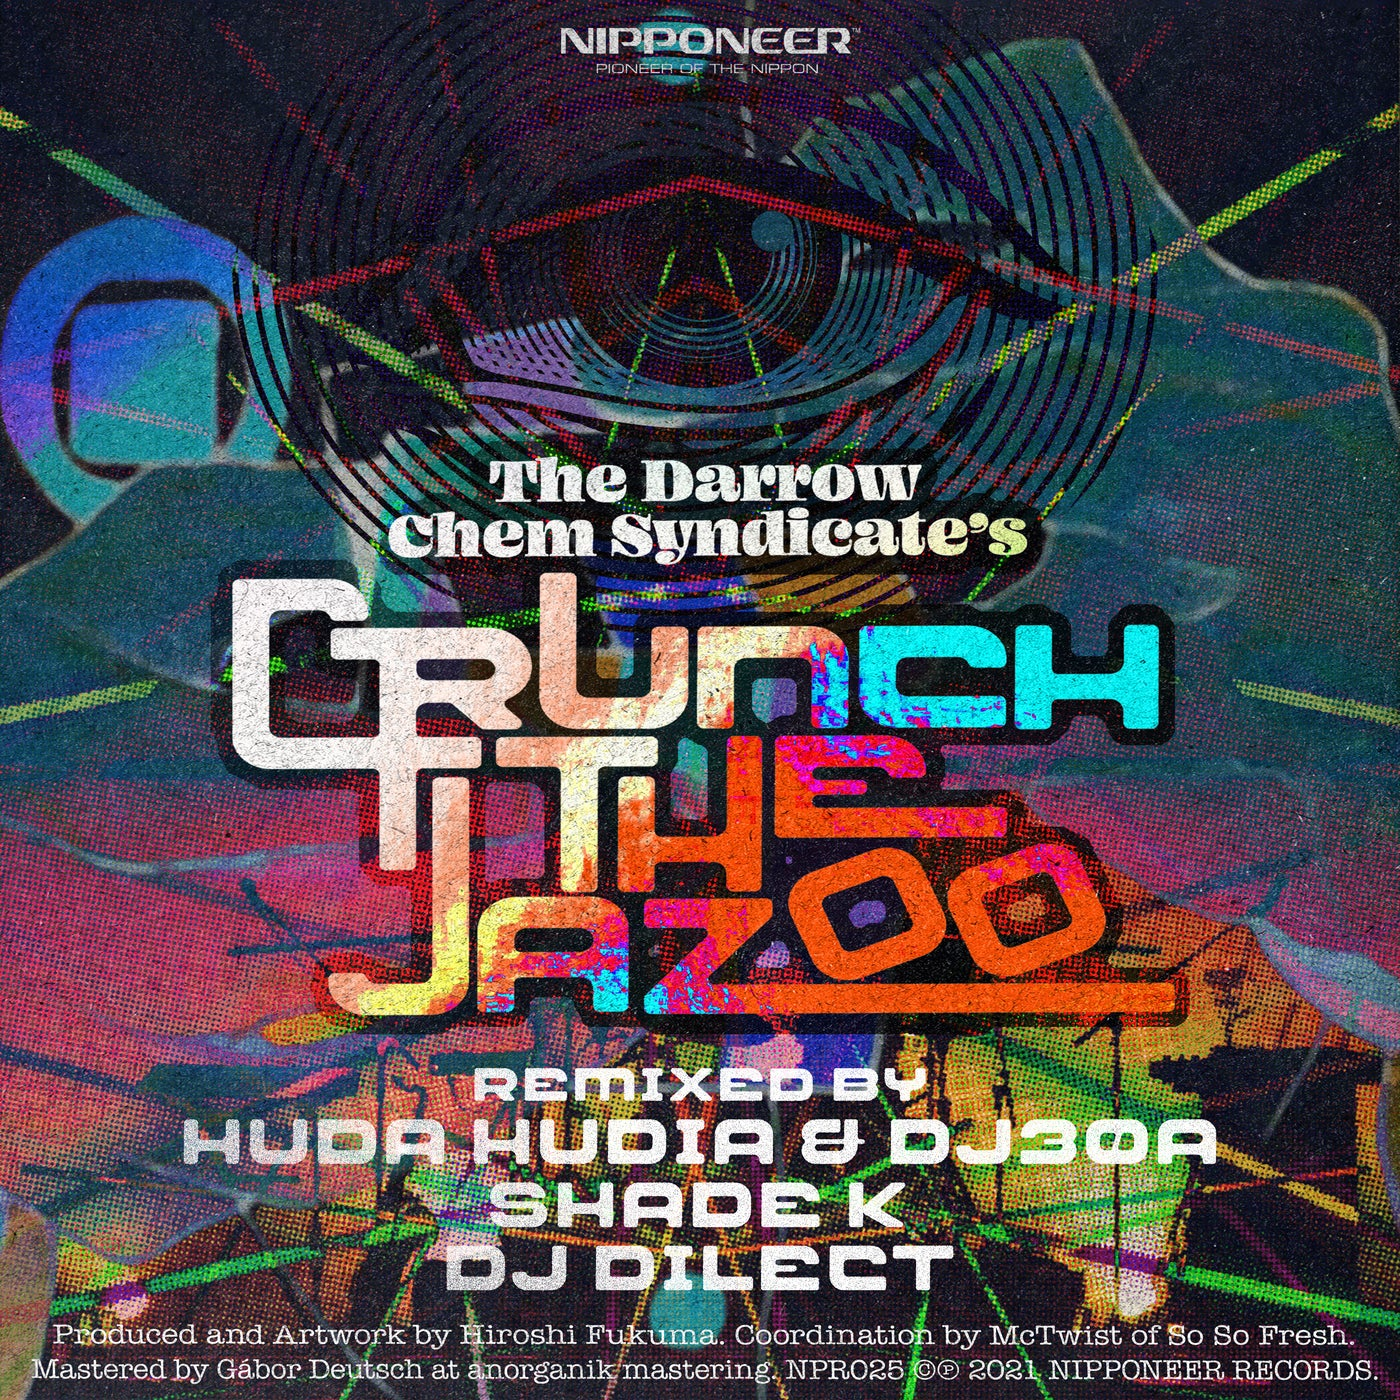 Crunch The Jazoo (Huda Hudia & DJ30A Remix)